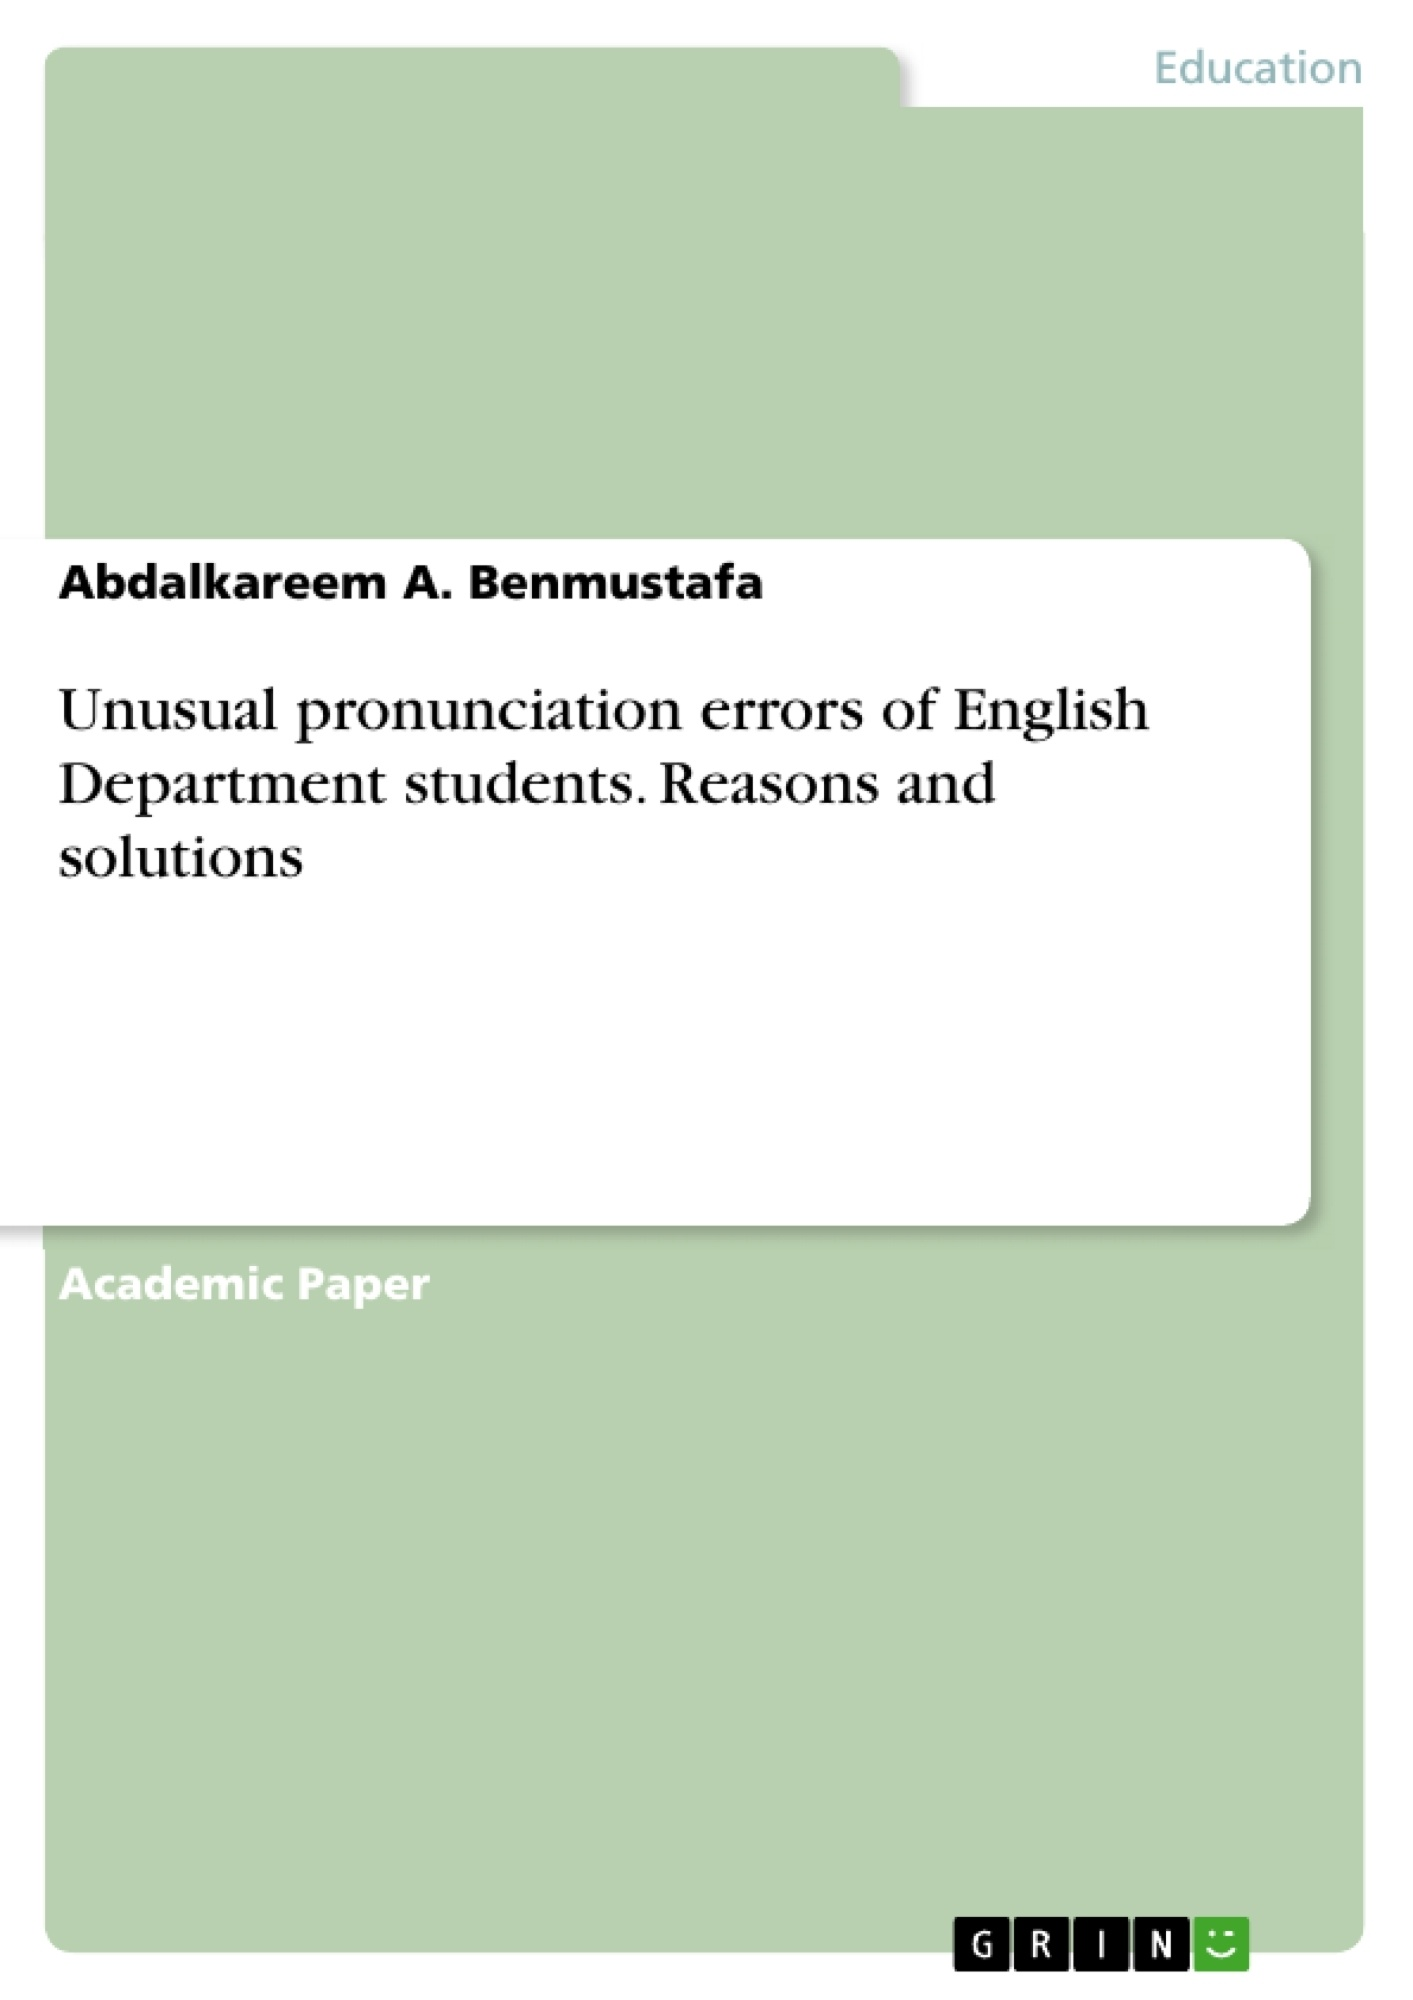 Title: Unusual pronunciation errors of English Department students. Reasons and solutions